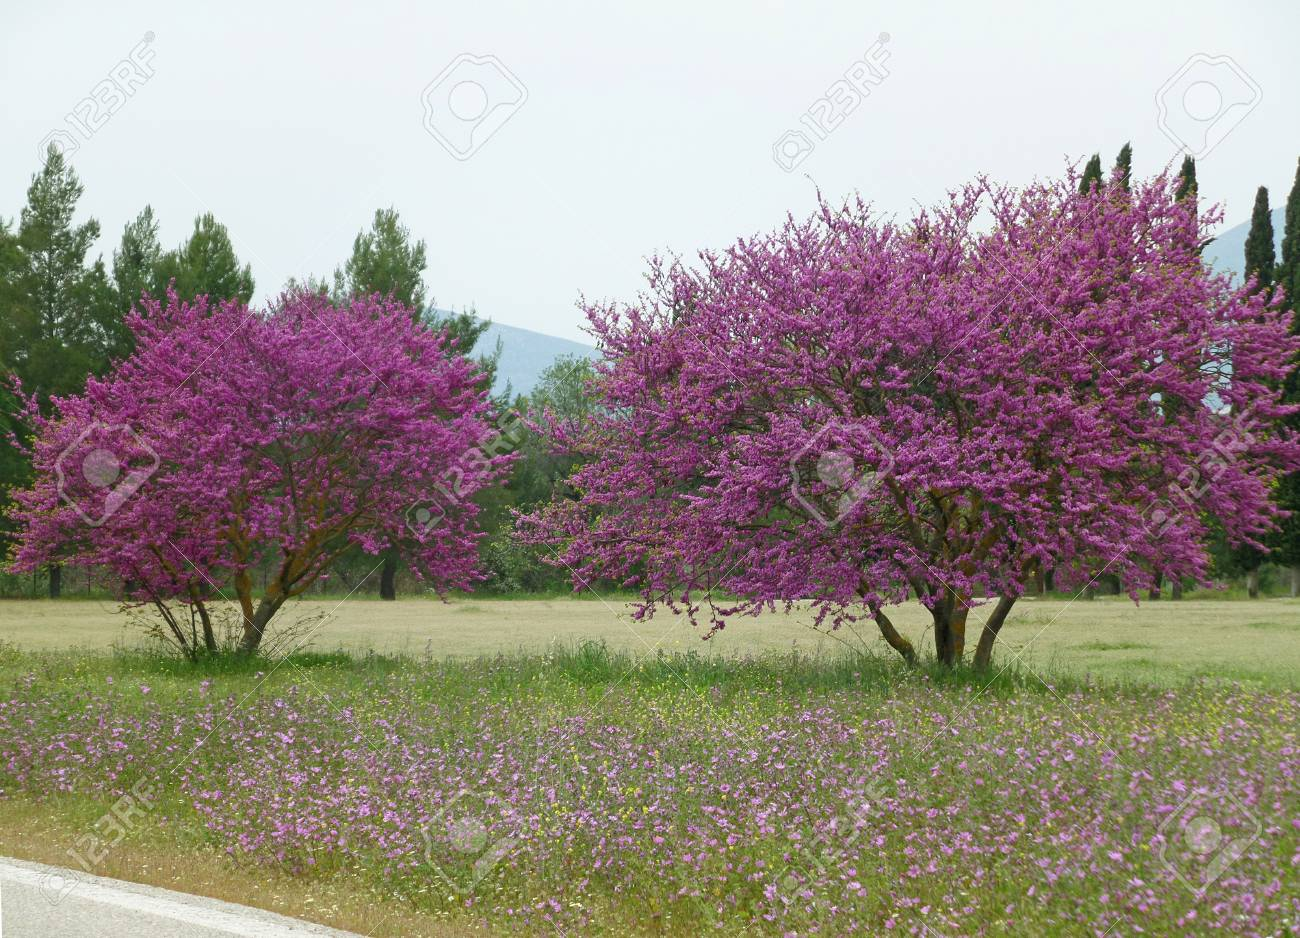 Vibrant pink wild flowering trees along the country roadside stock stock photo vibrant pink wild flowering trees along the country roadside in spring greece mightylinksfo